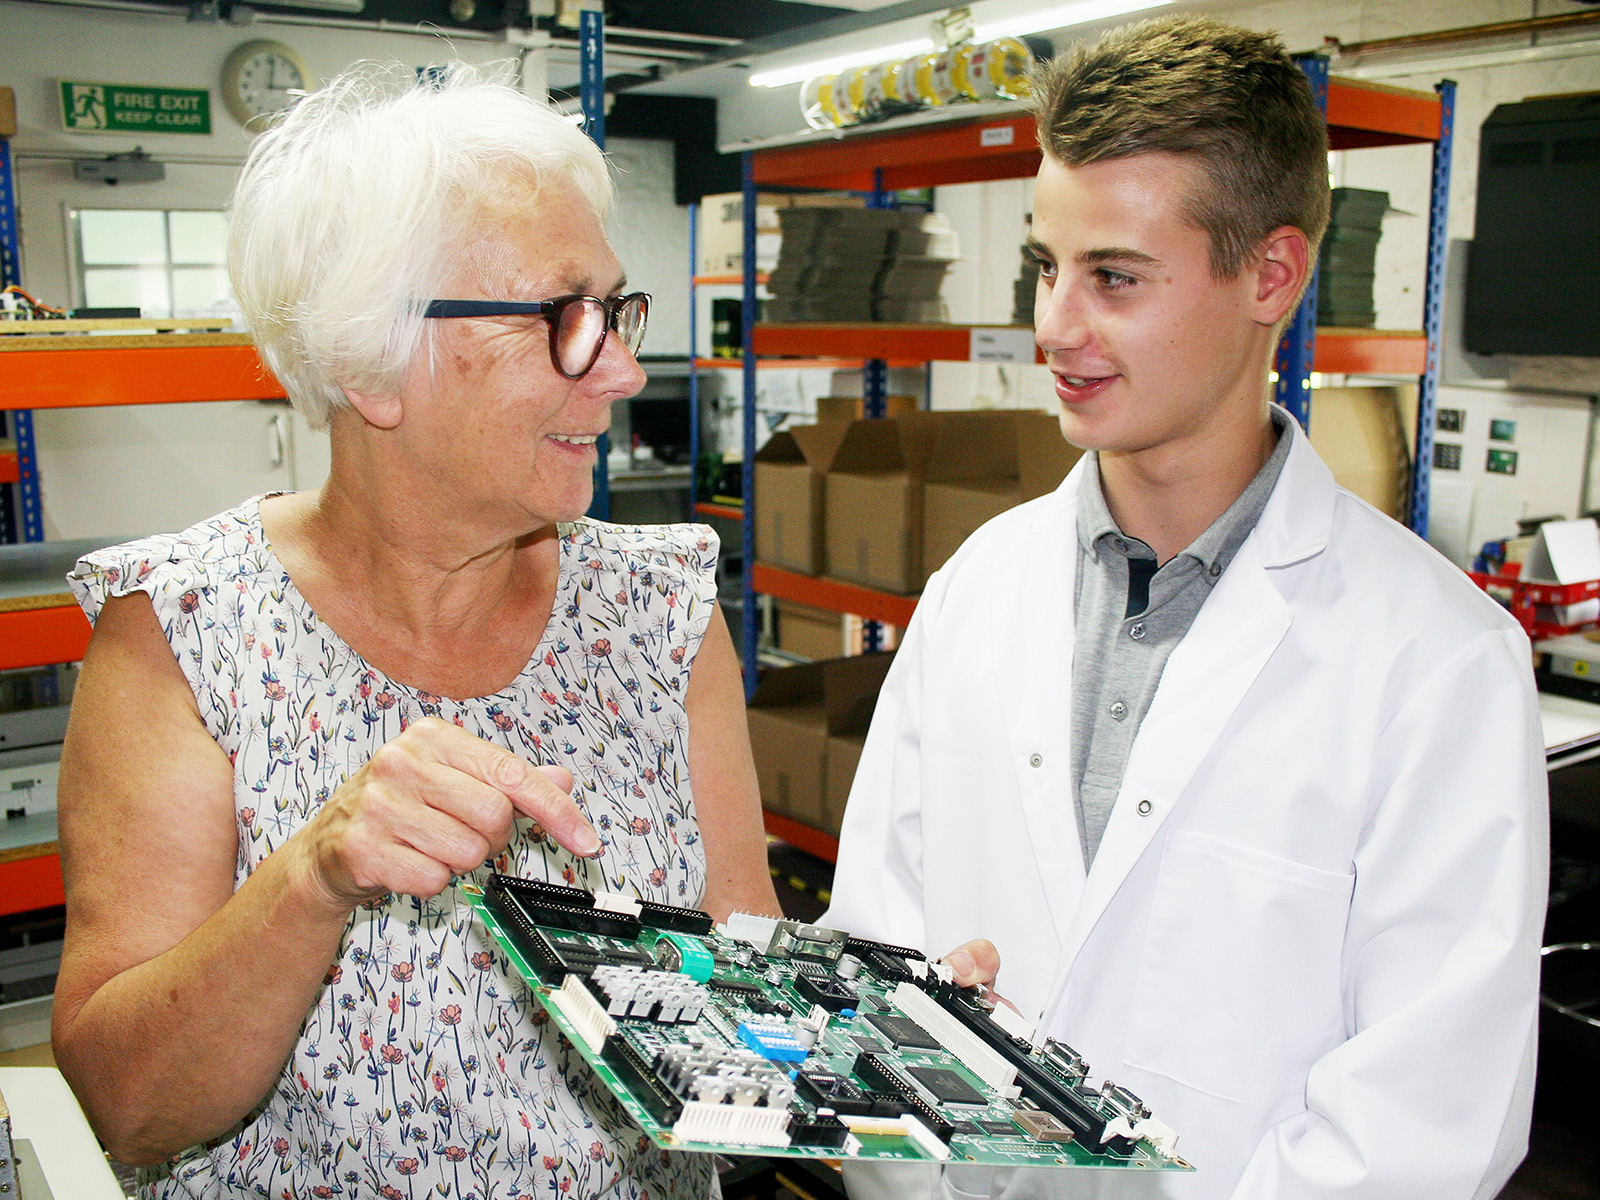 Cath Clark, Heber Production Controller (left) with Ben Latham (right) holding a Heber PCB